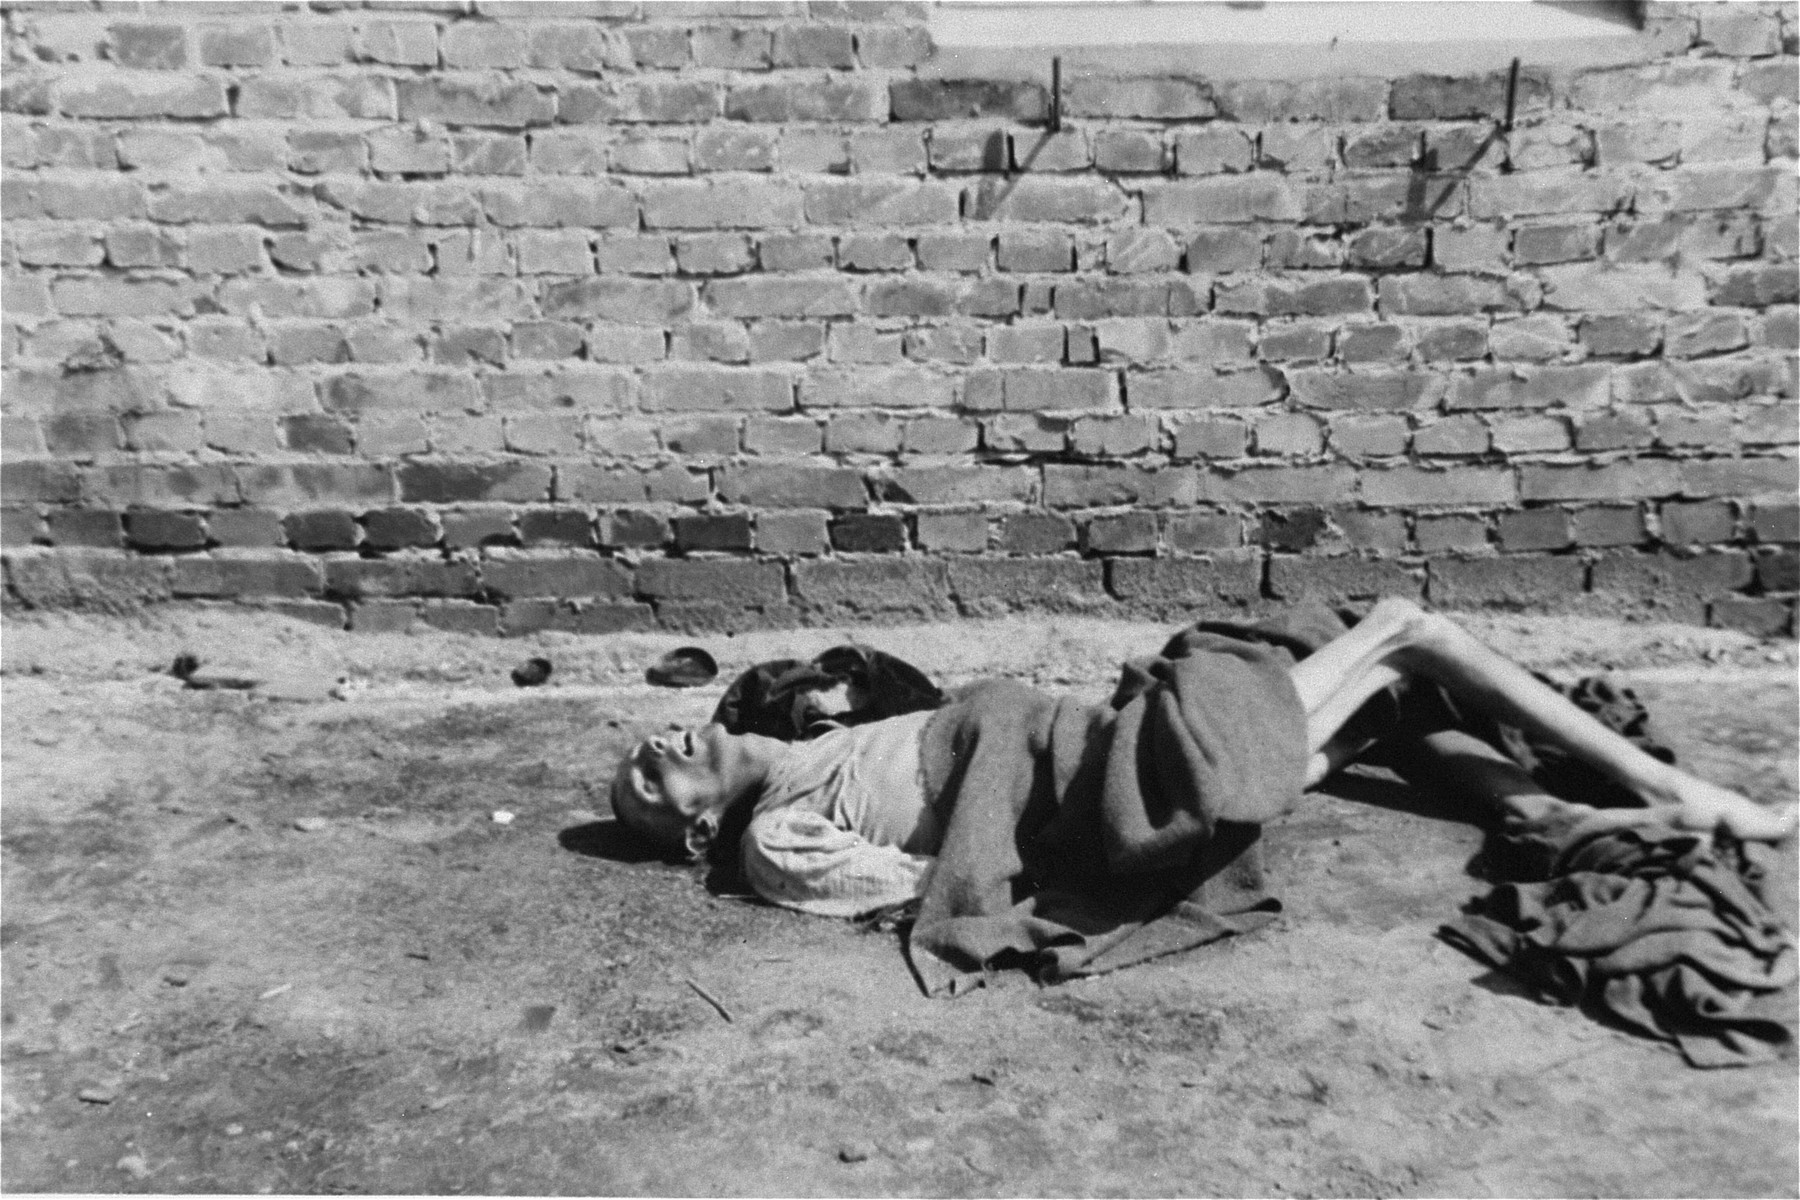 The body of a prisoner in Woebbelin.